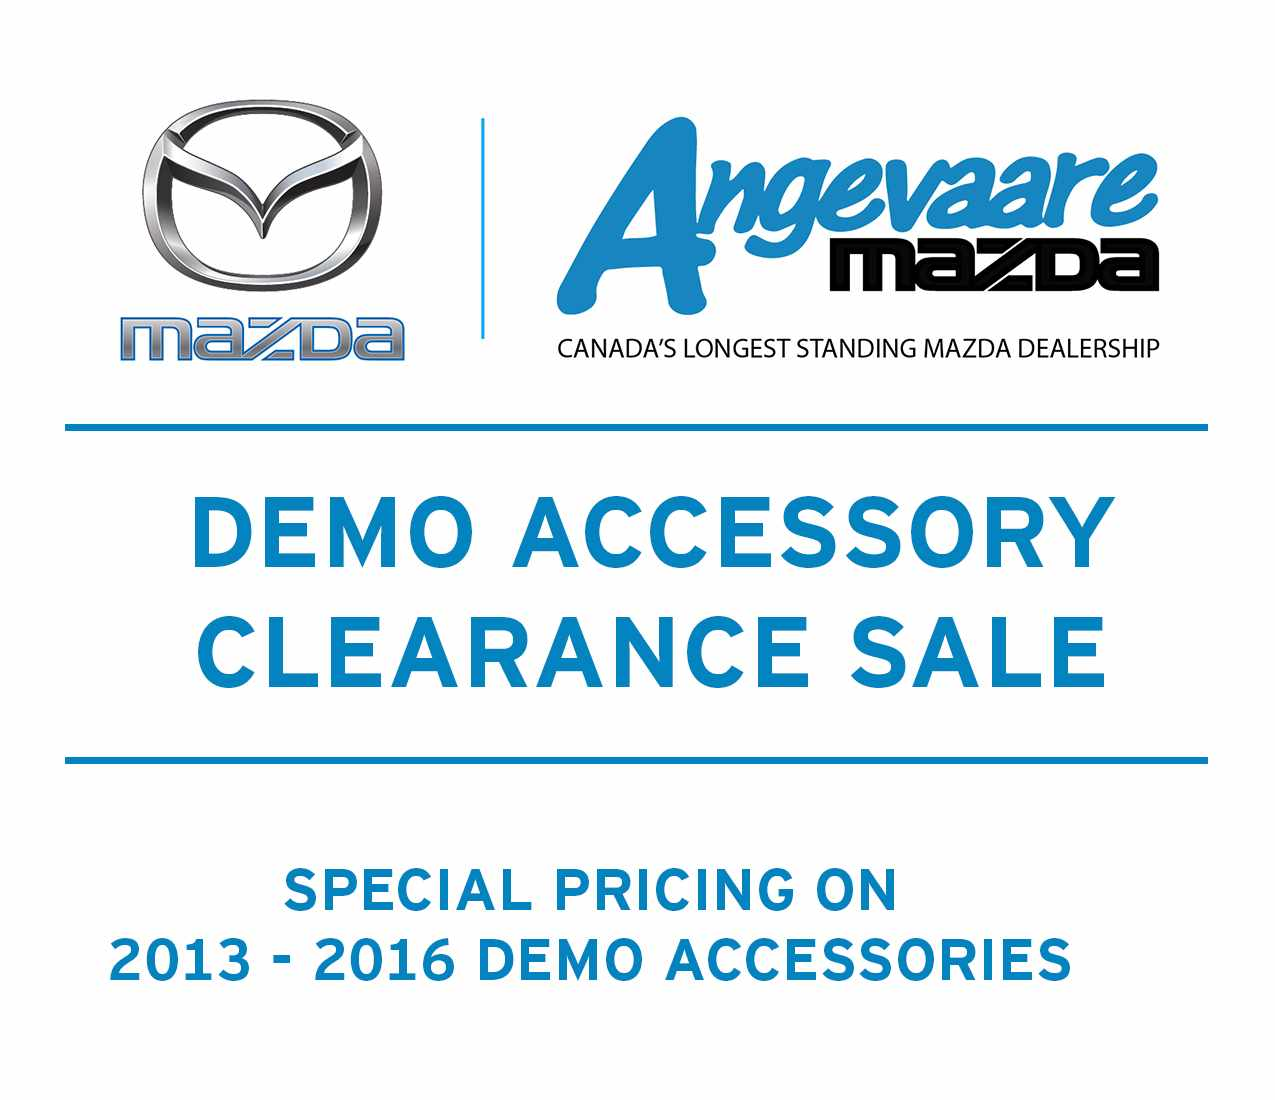 Demo Accessorry Clearance Sale - Special Pricing on 2013 -2016 Accessories